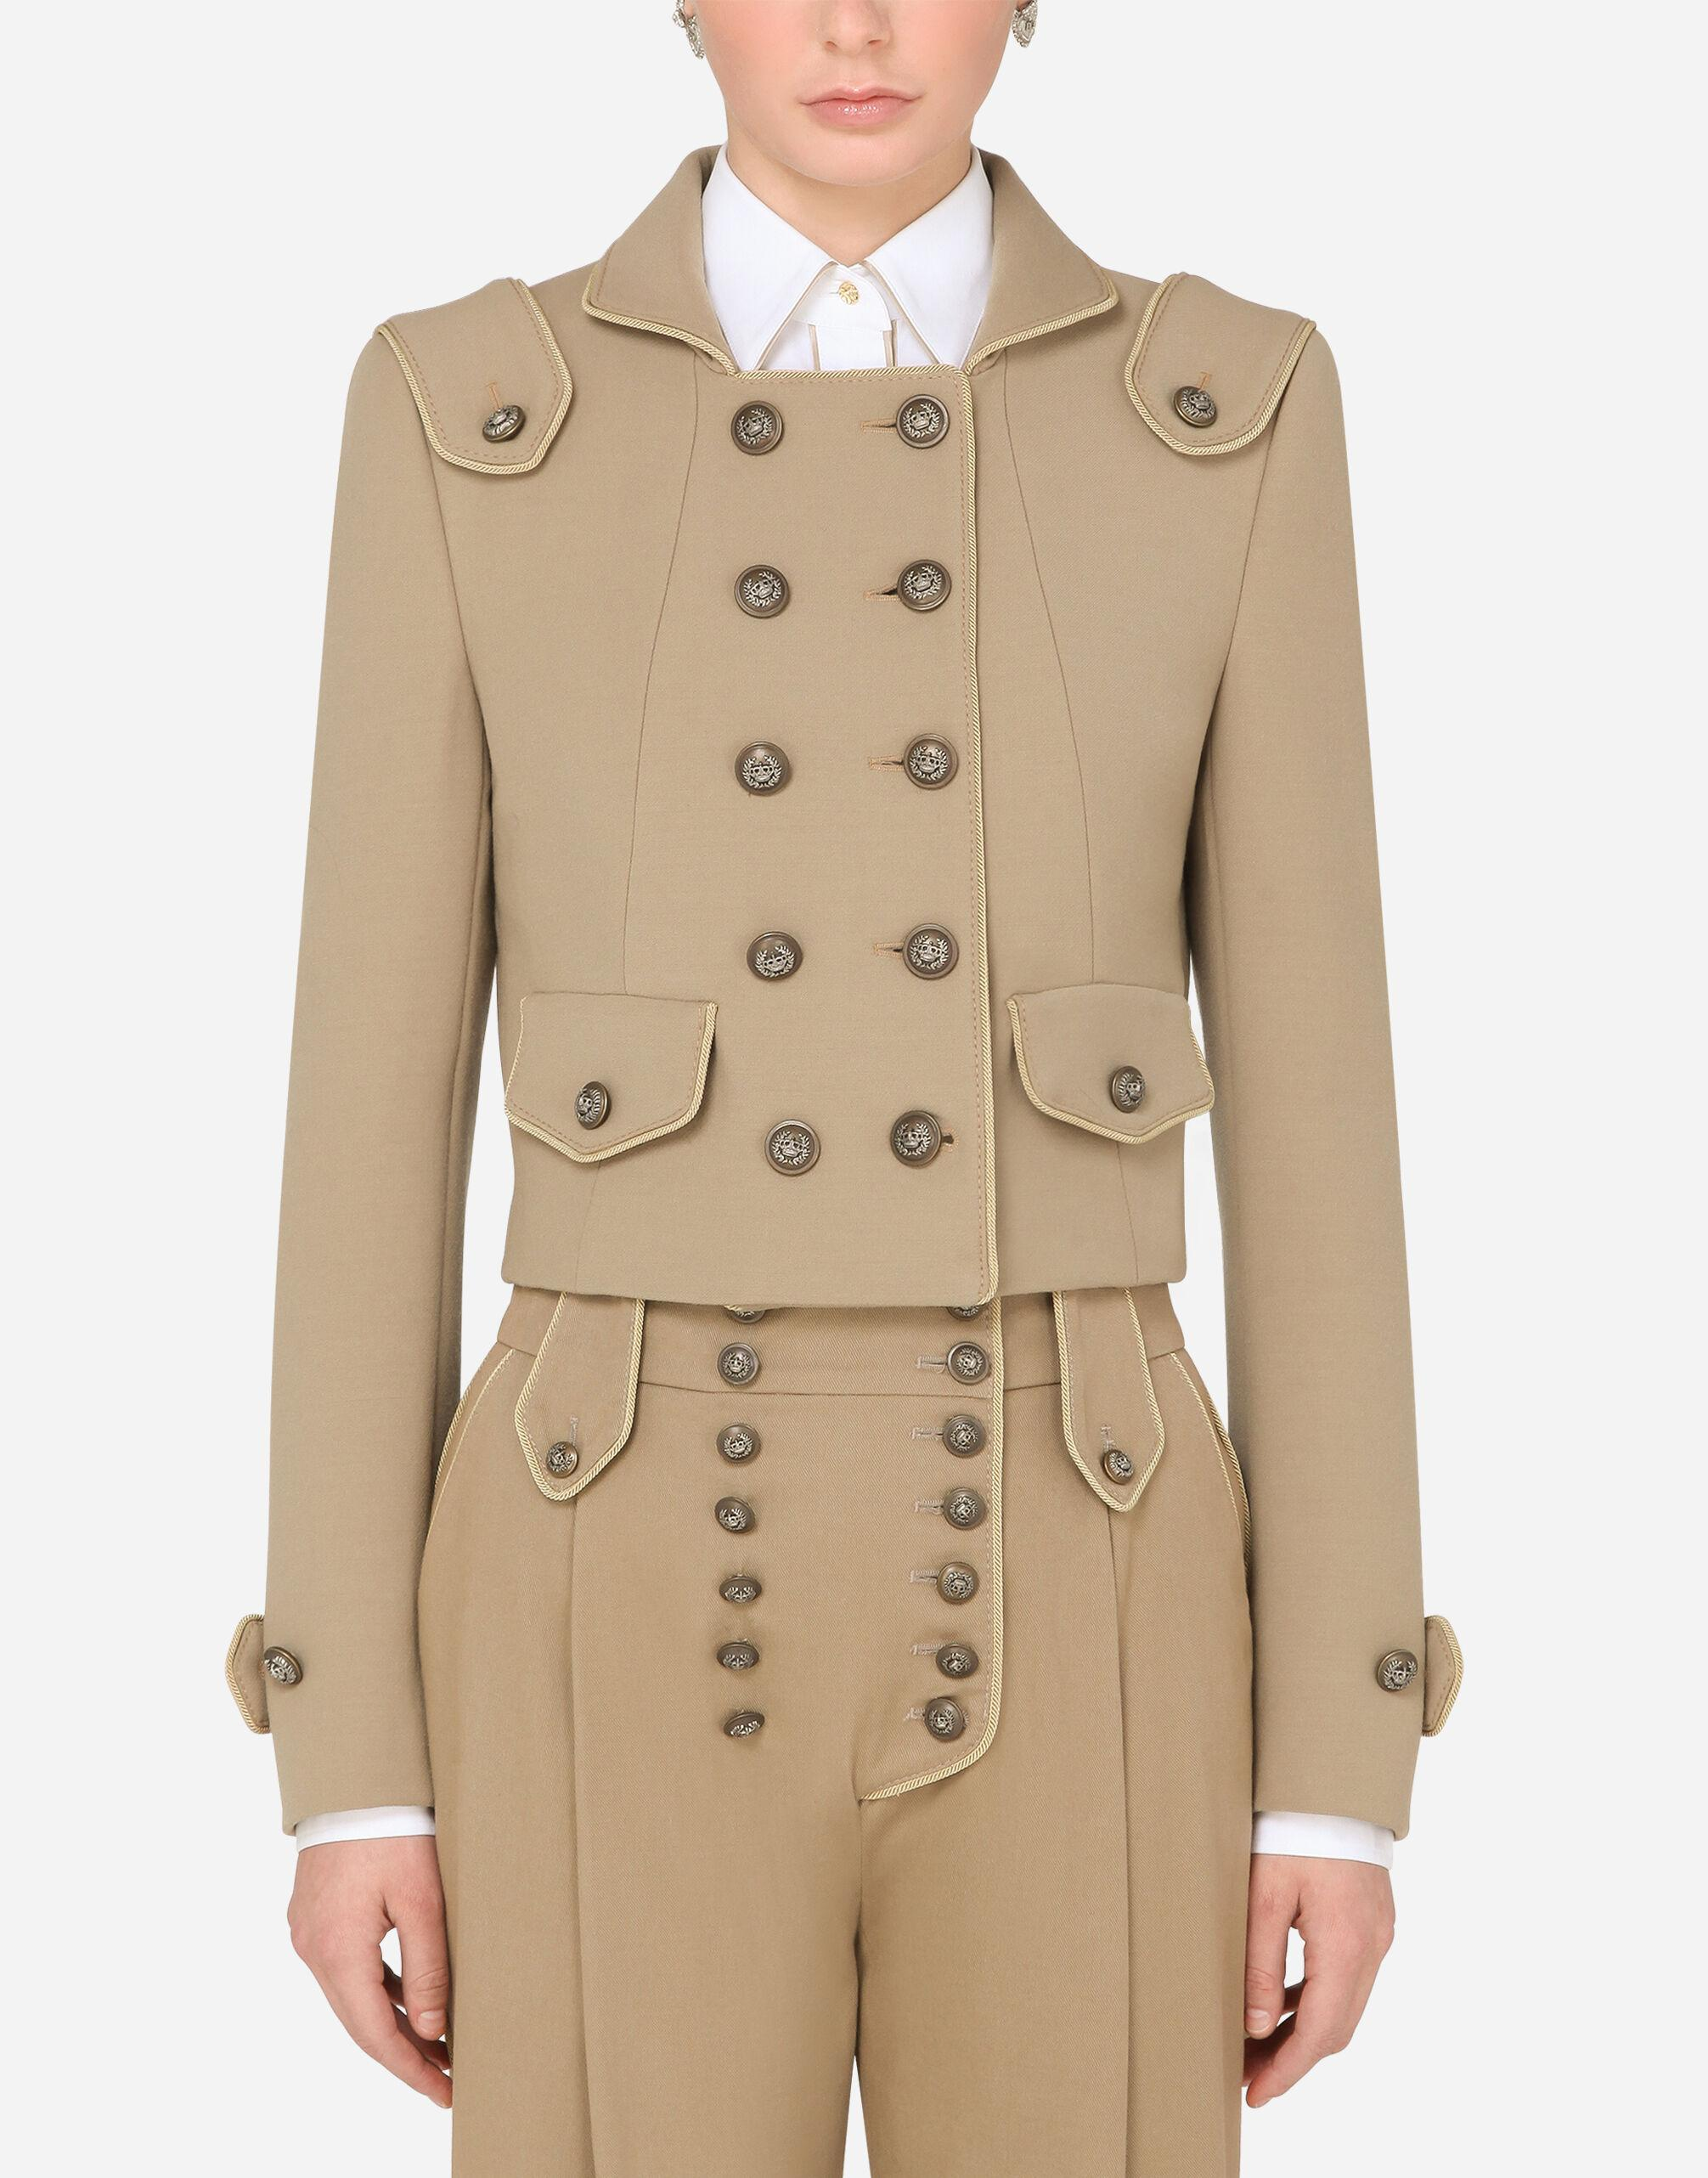 Cropped double-breasted jacket in wool with decorative buttons